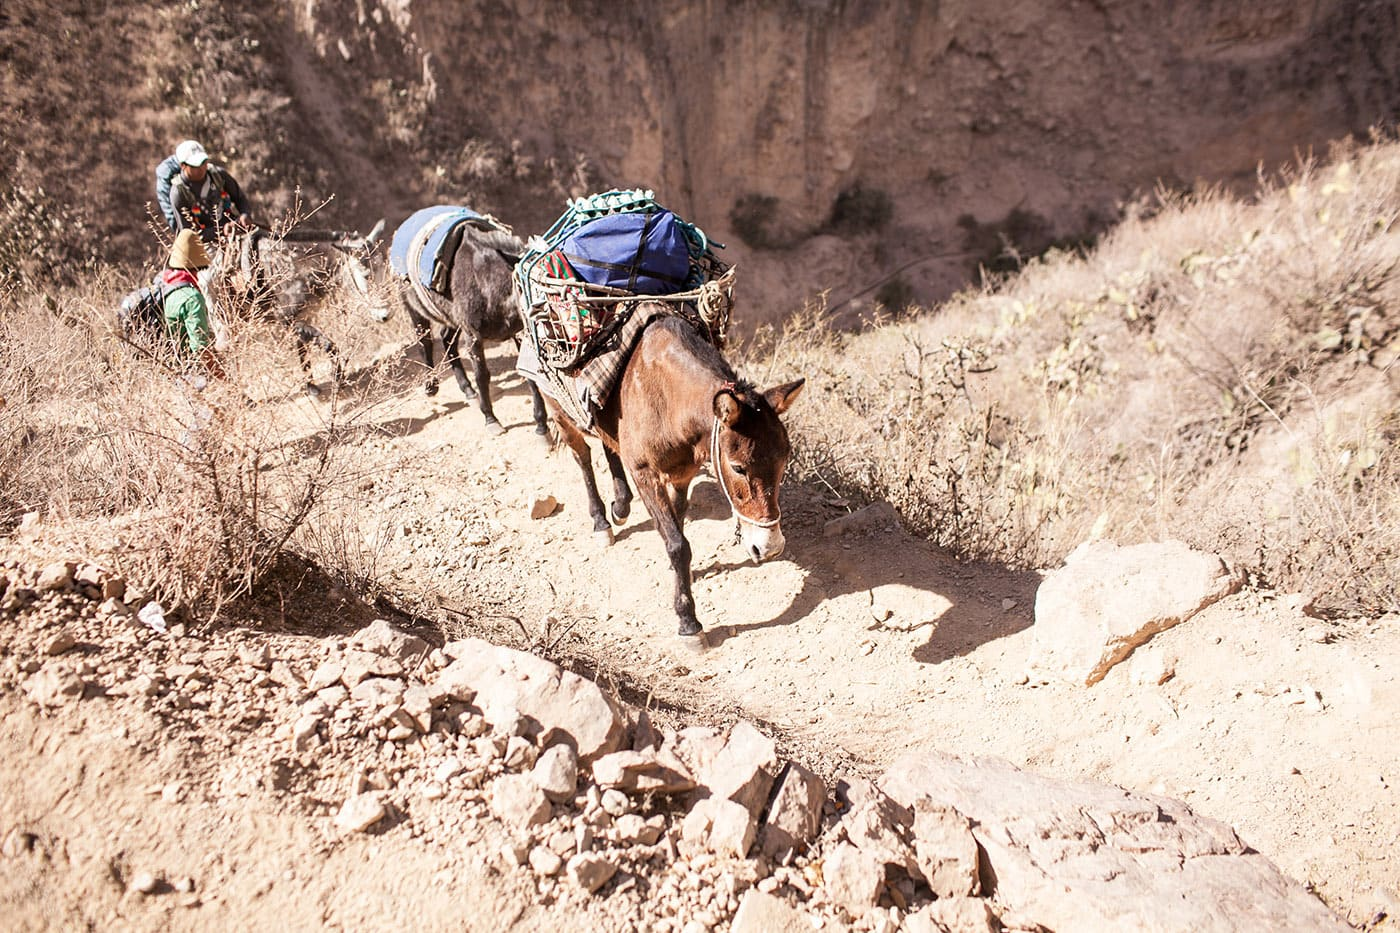 Colca Canyon Trek in Peru - trekking Colca Canyon, and not getting a mule to take me to the top.